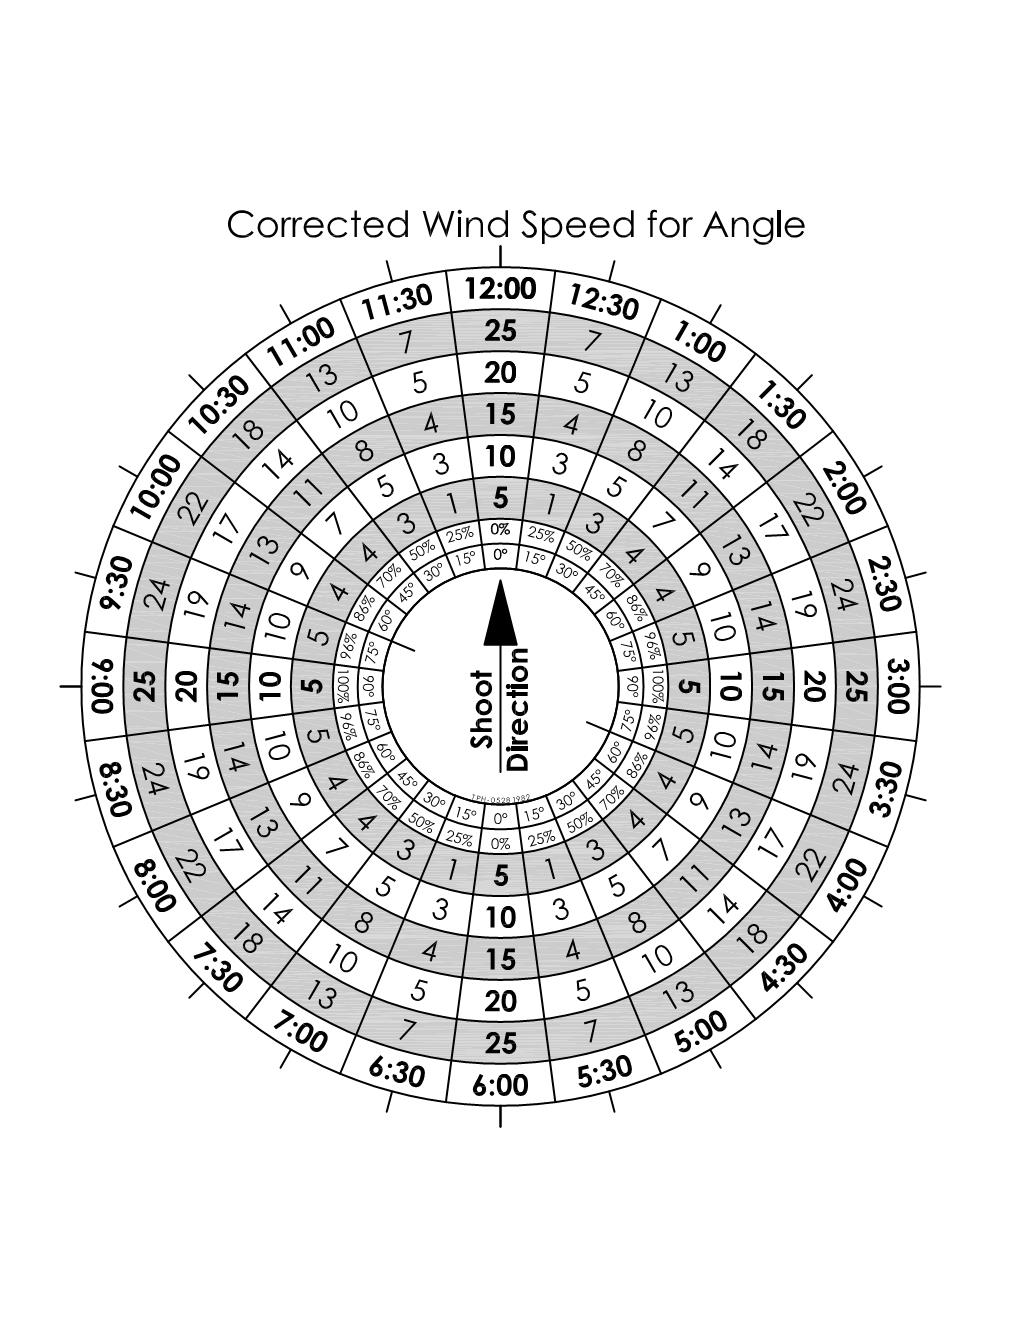 Wind Rose - Corrected wind speed for Angle.jpg